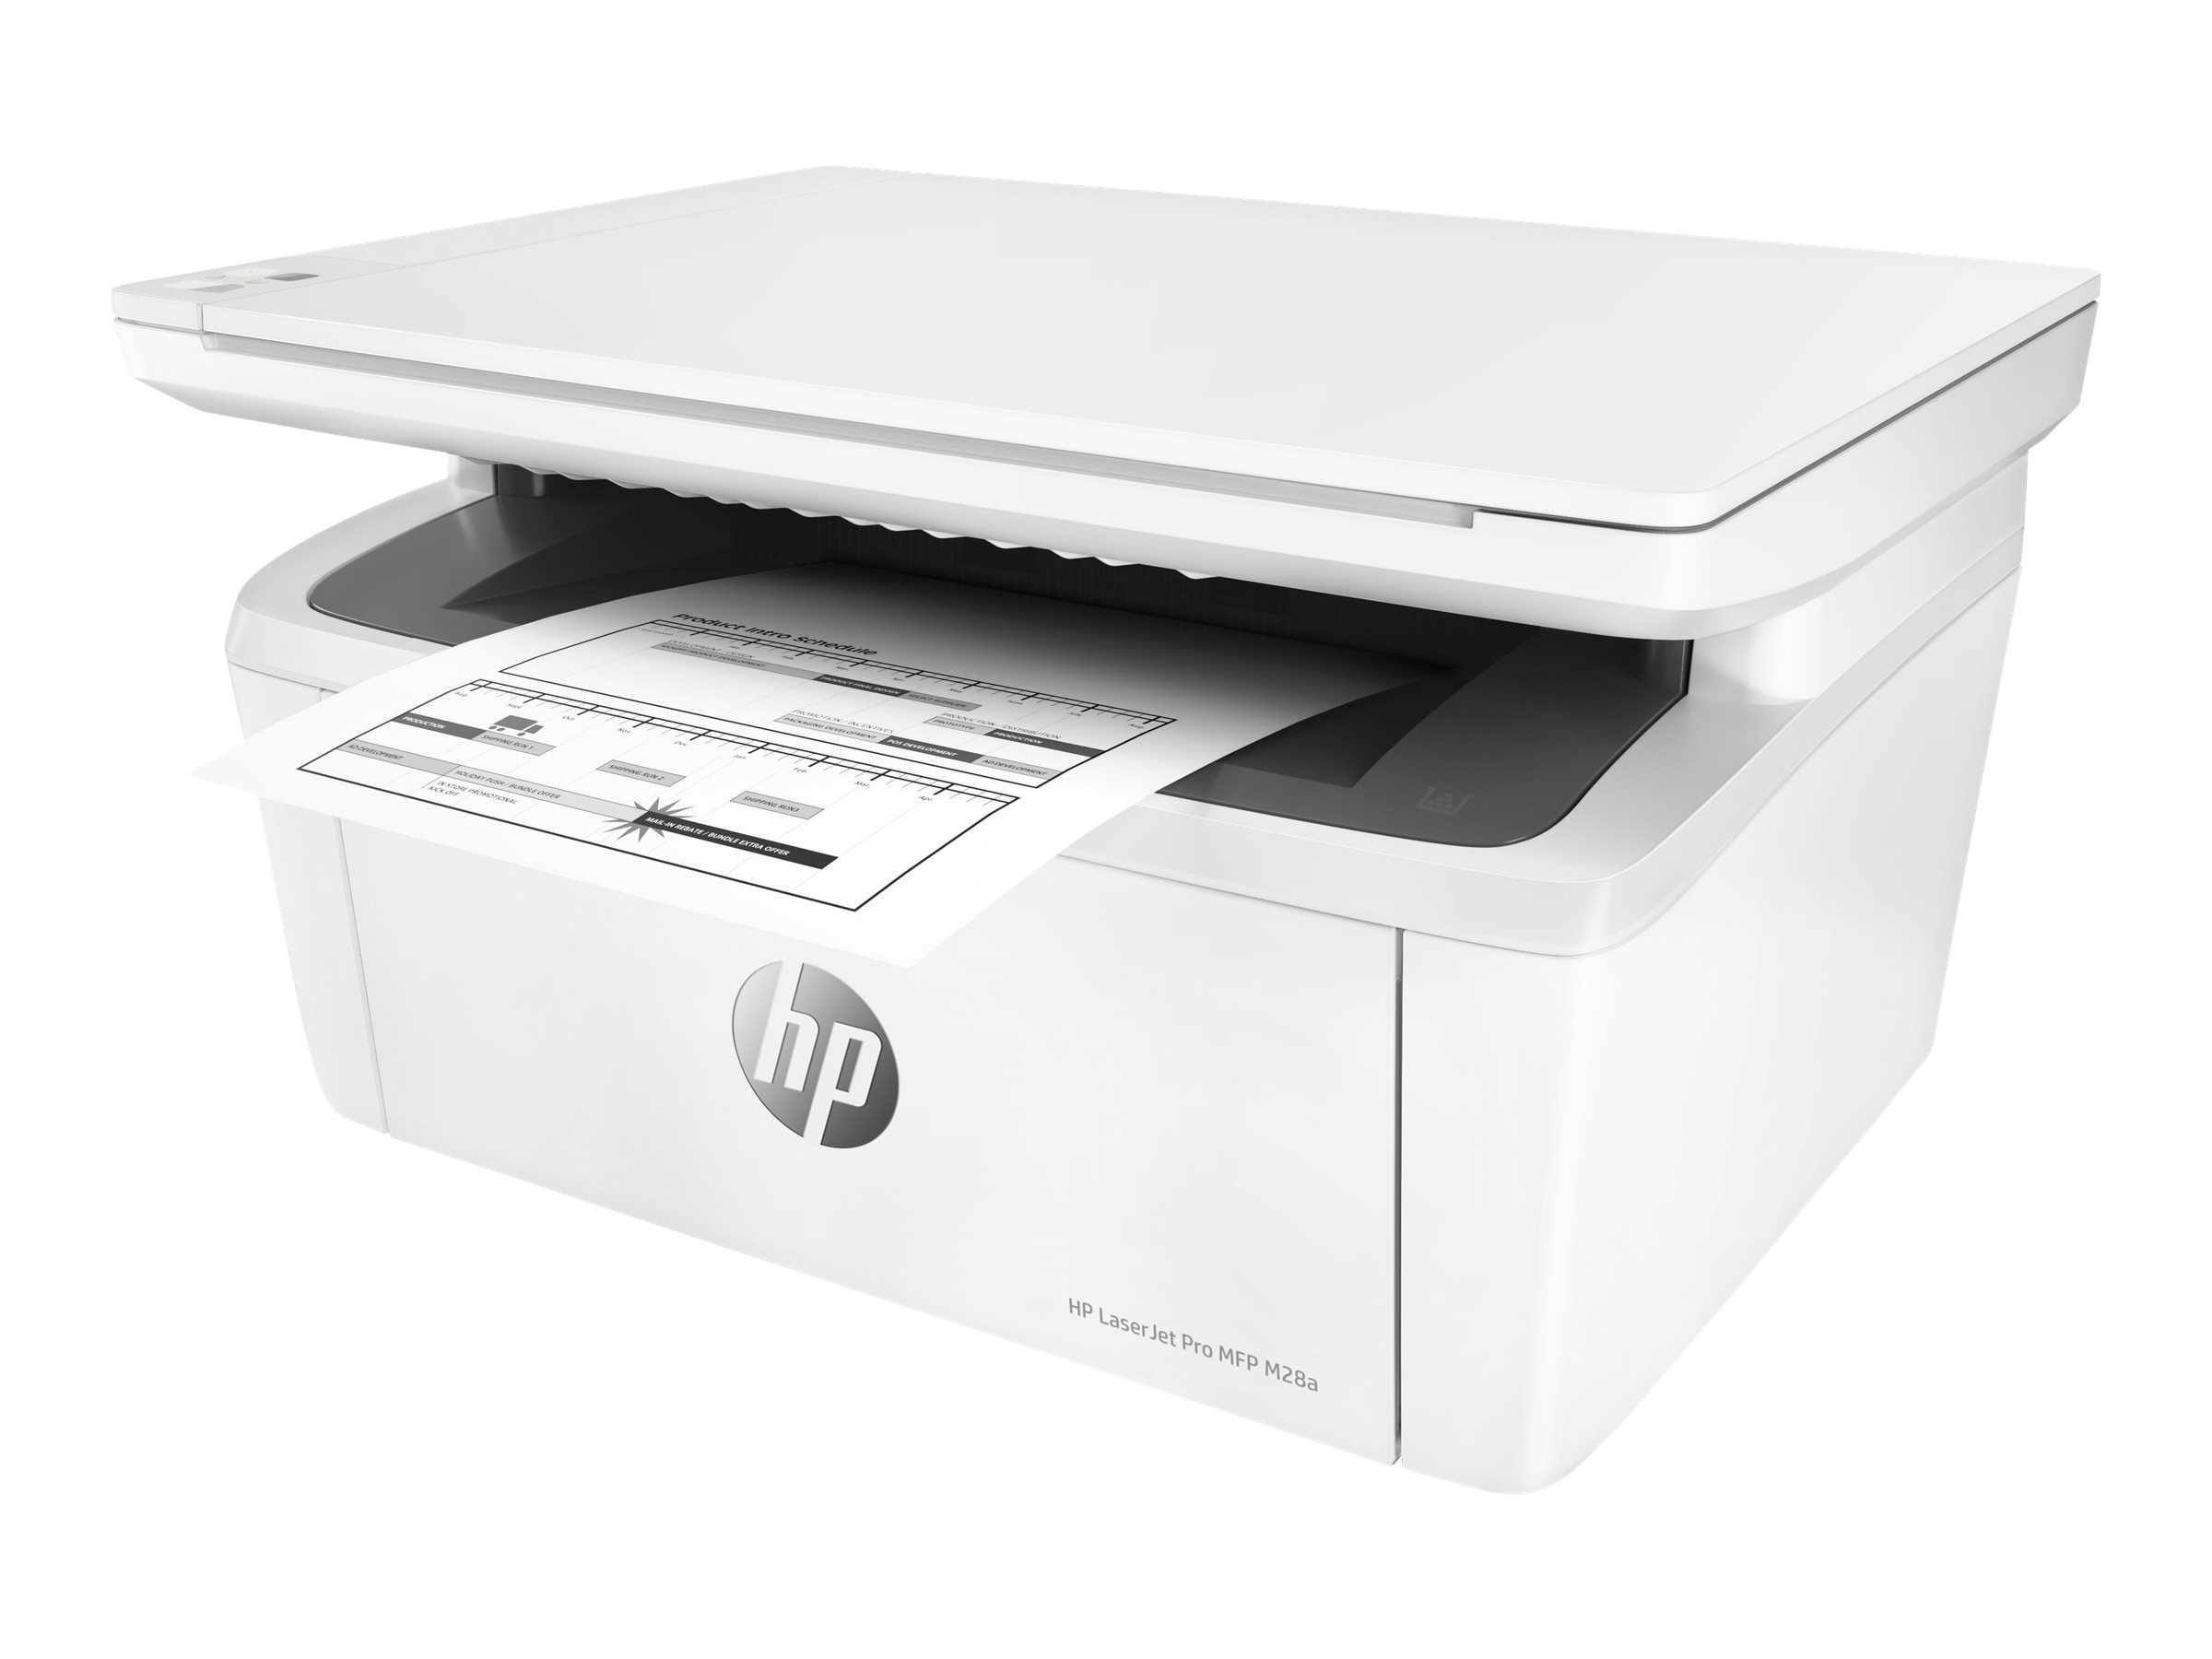 HP LaserJet Pro MFP M28a - Multifunktionsdrucker - s/w - Laser - 216 x 297 mm (Original)